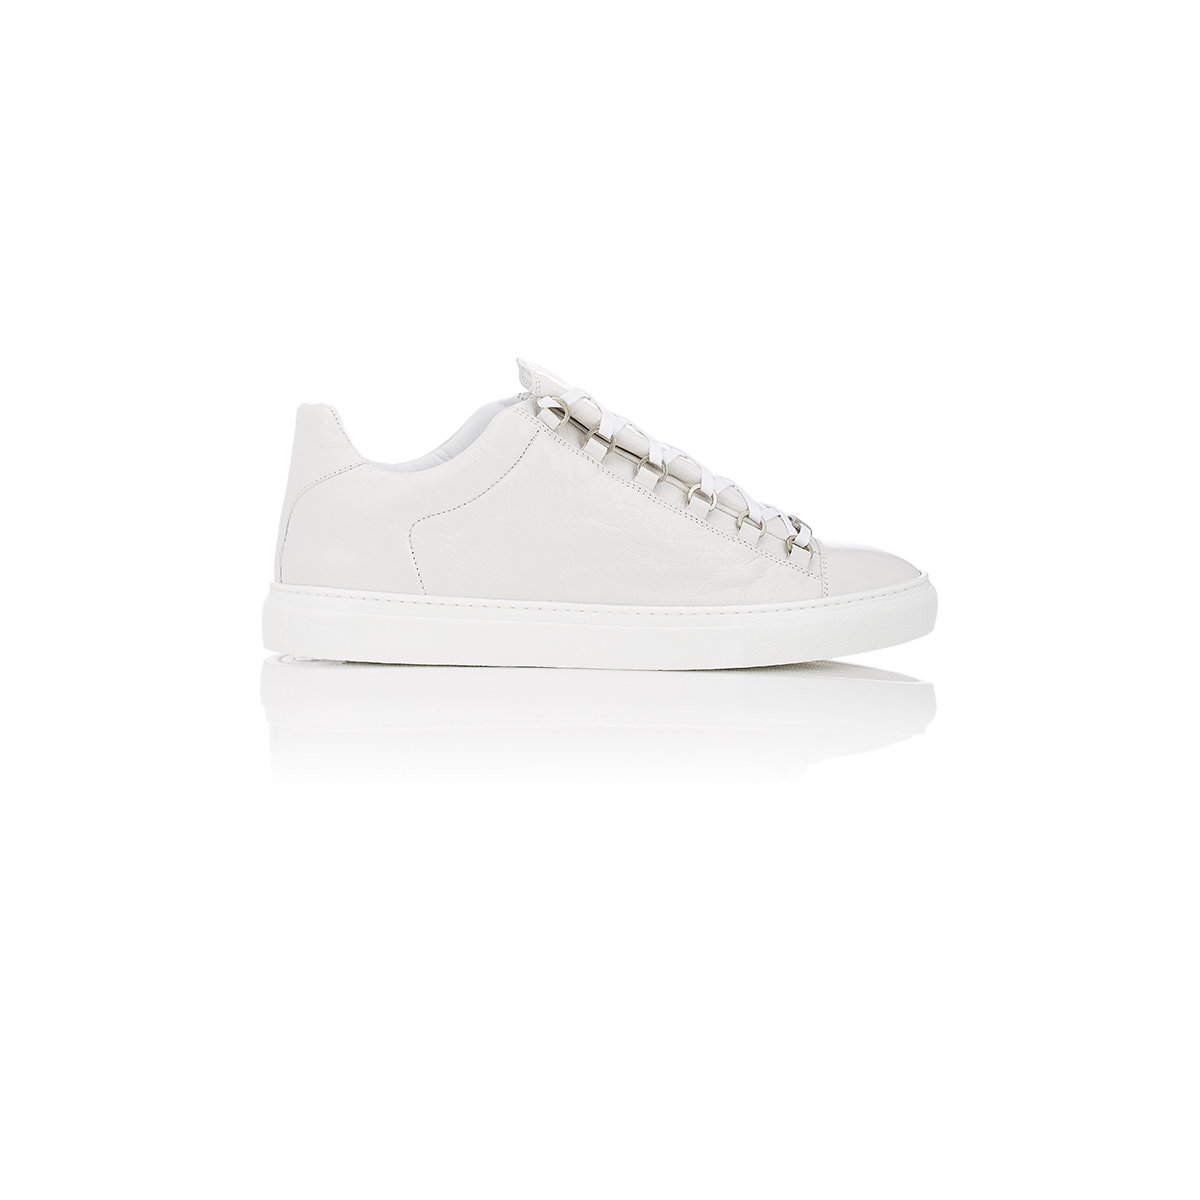 756bc5646948 Lyst - Balenciaga Leather Arena Low-top Sneakers in White for Men